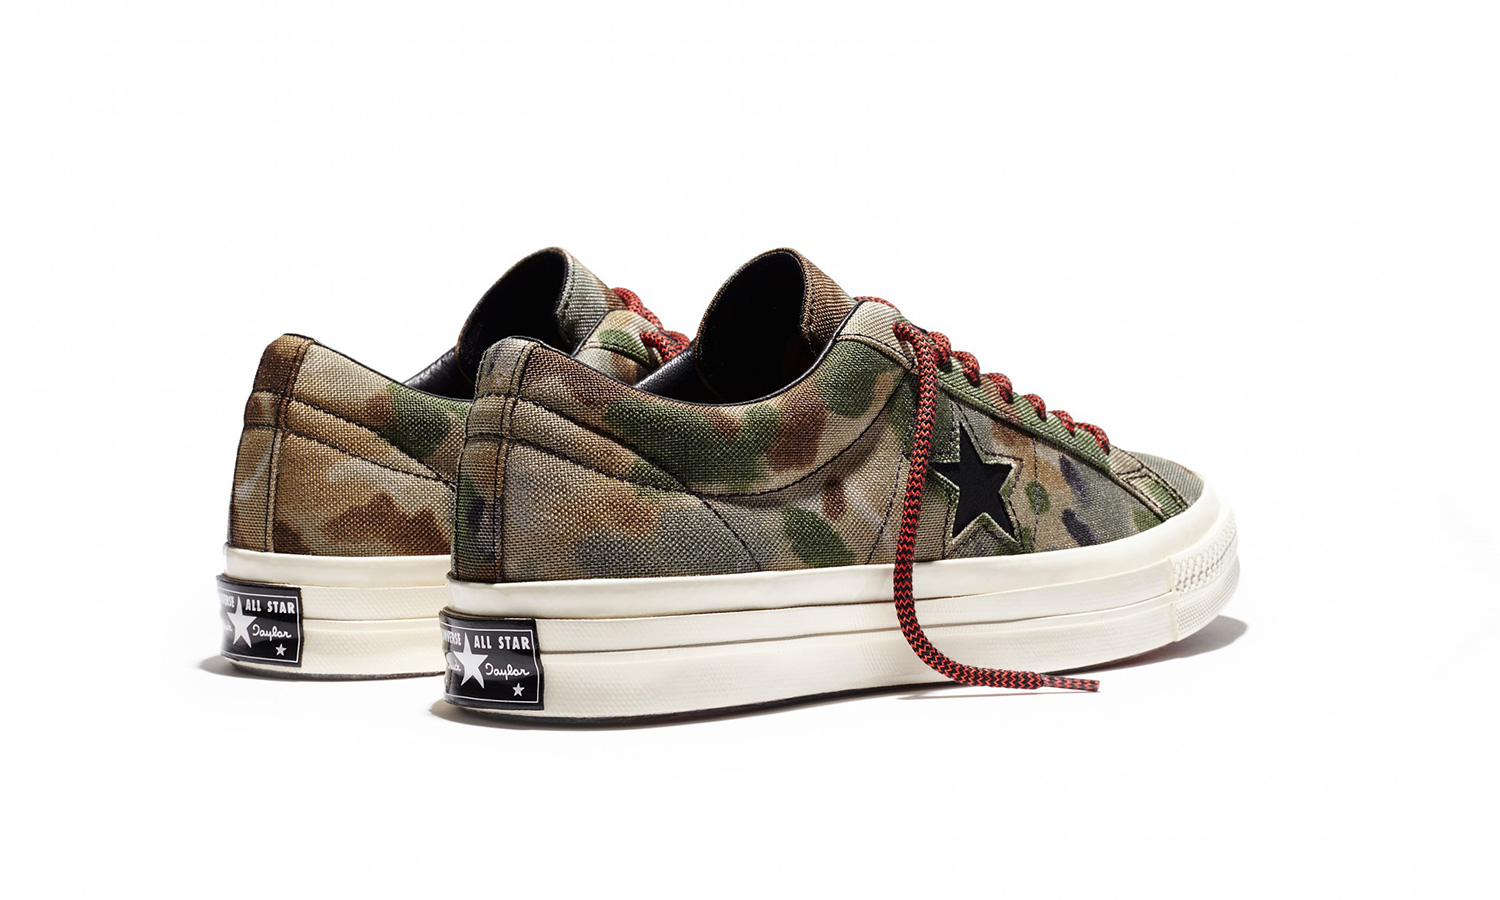 converse-first-string-one-star-74-brookwood-camo-2